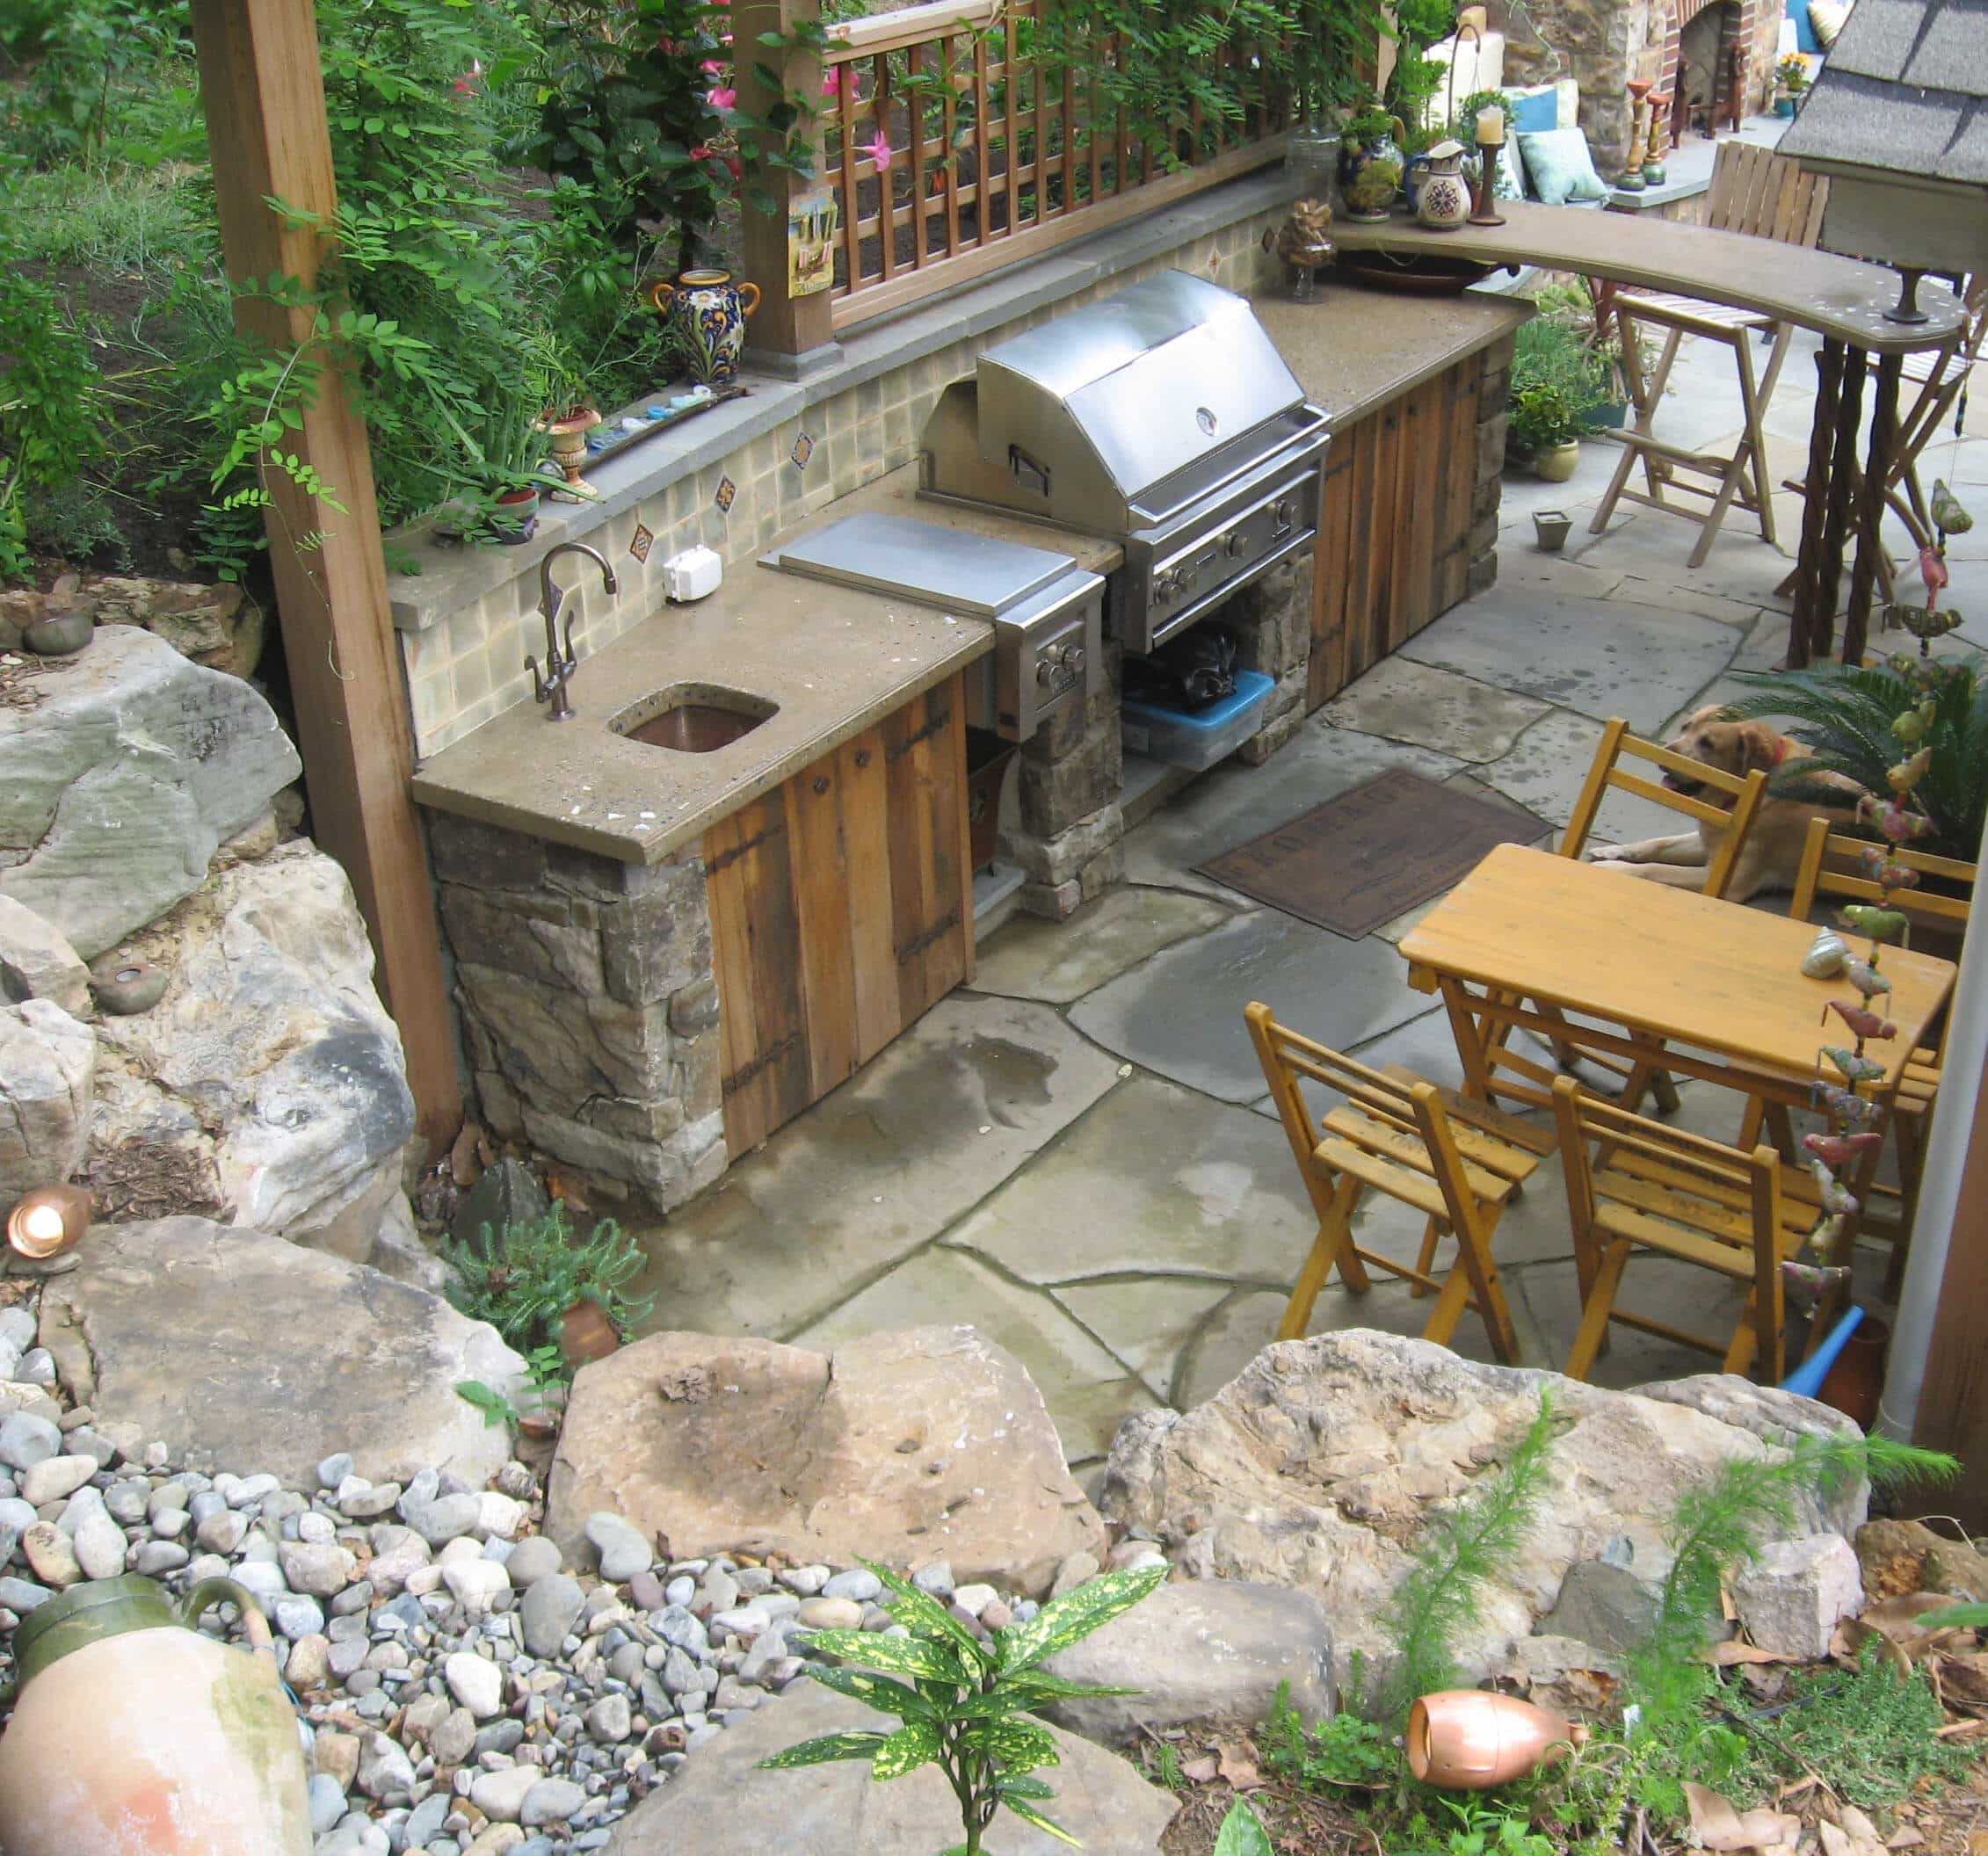 17 Outdoor Kitchen with Concrete Countertop, Stone Walls and Retaining Boulders